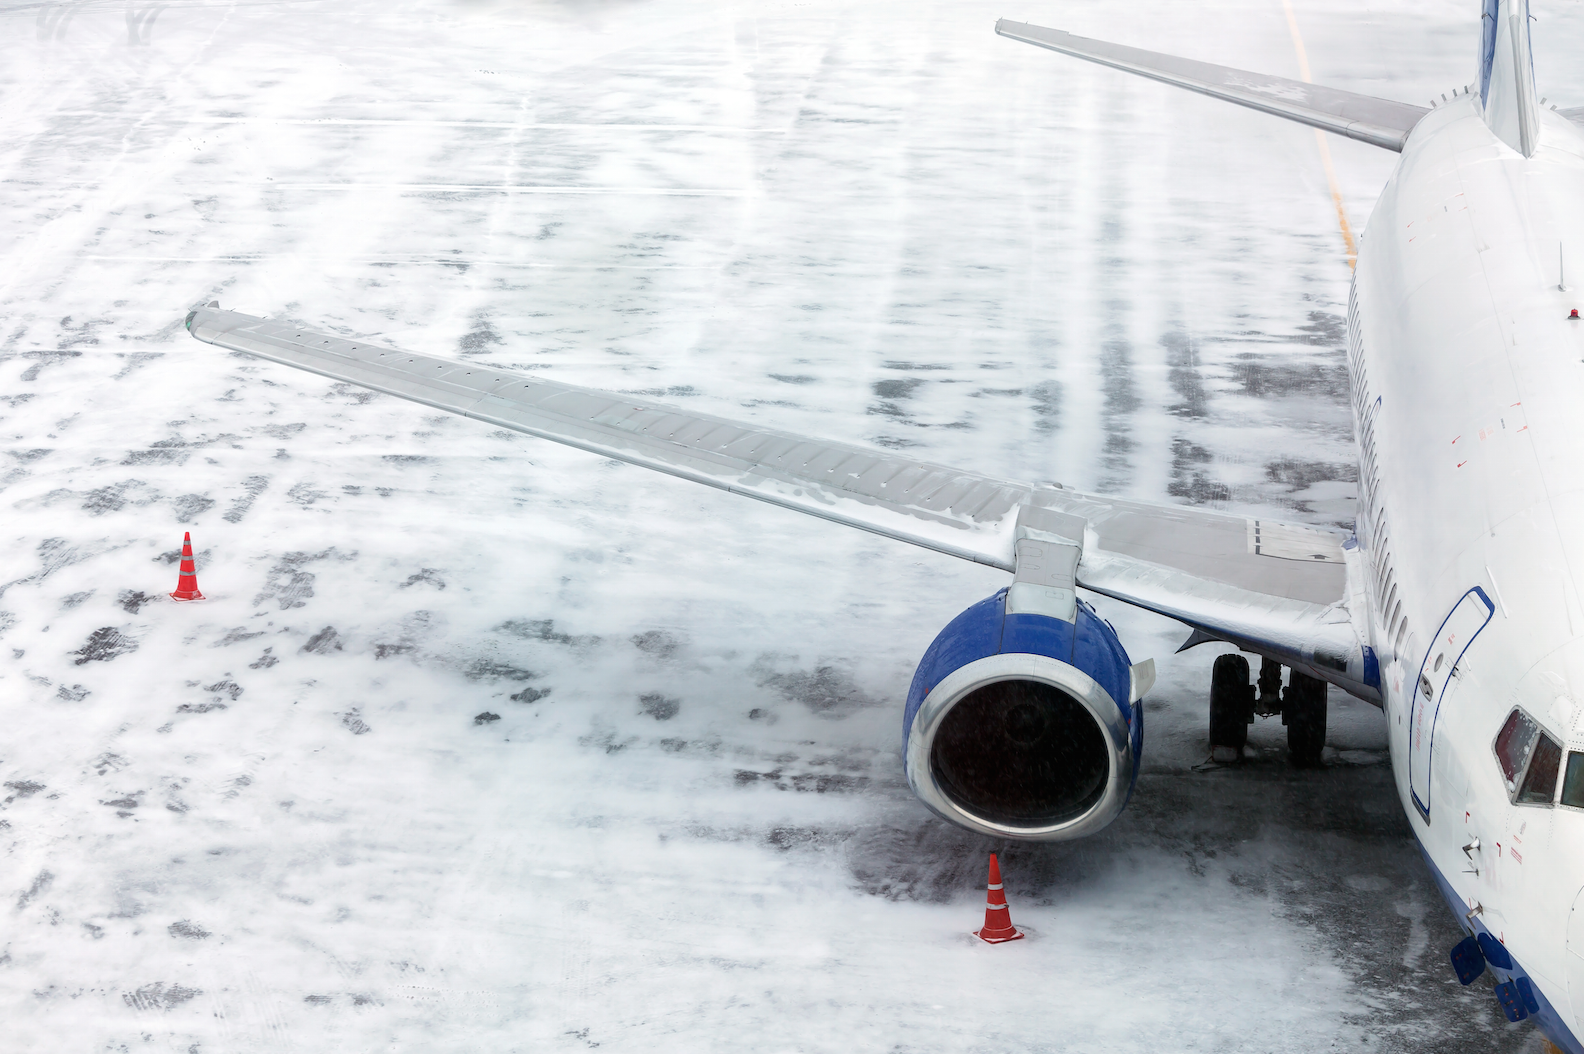 Flight delay compensation claims expected to rise this winter | FairPlane UK image